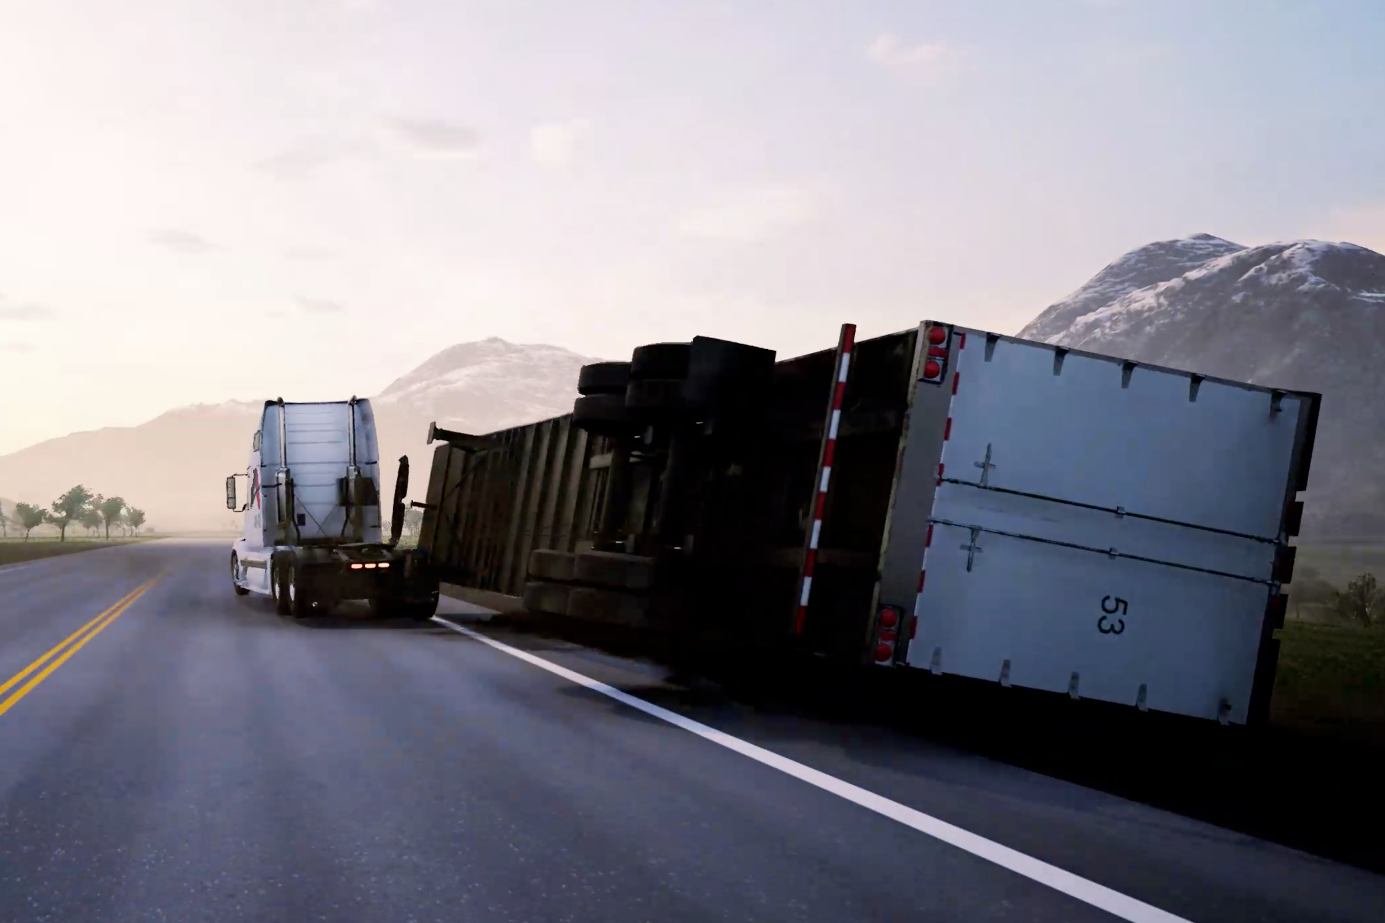 When a big, heavy trailer starts to tip, the TARS system releases it in an instant to keep the driver and the cab upright and safe